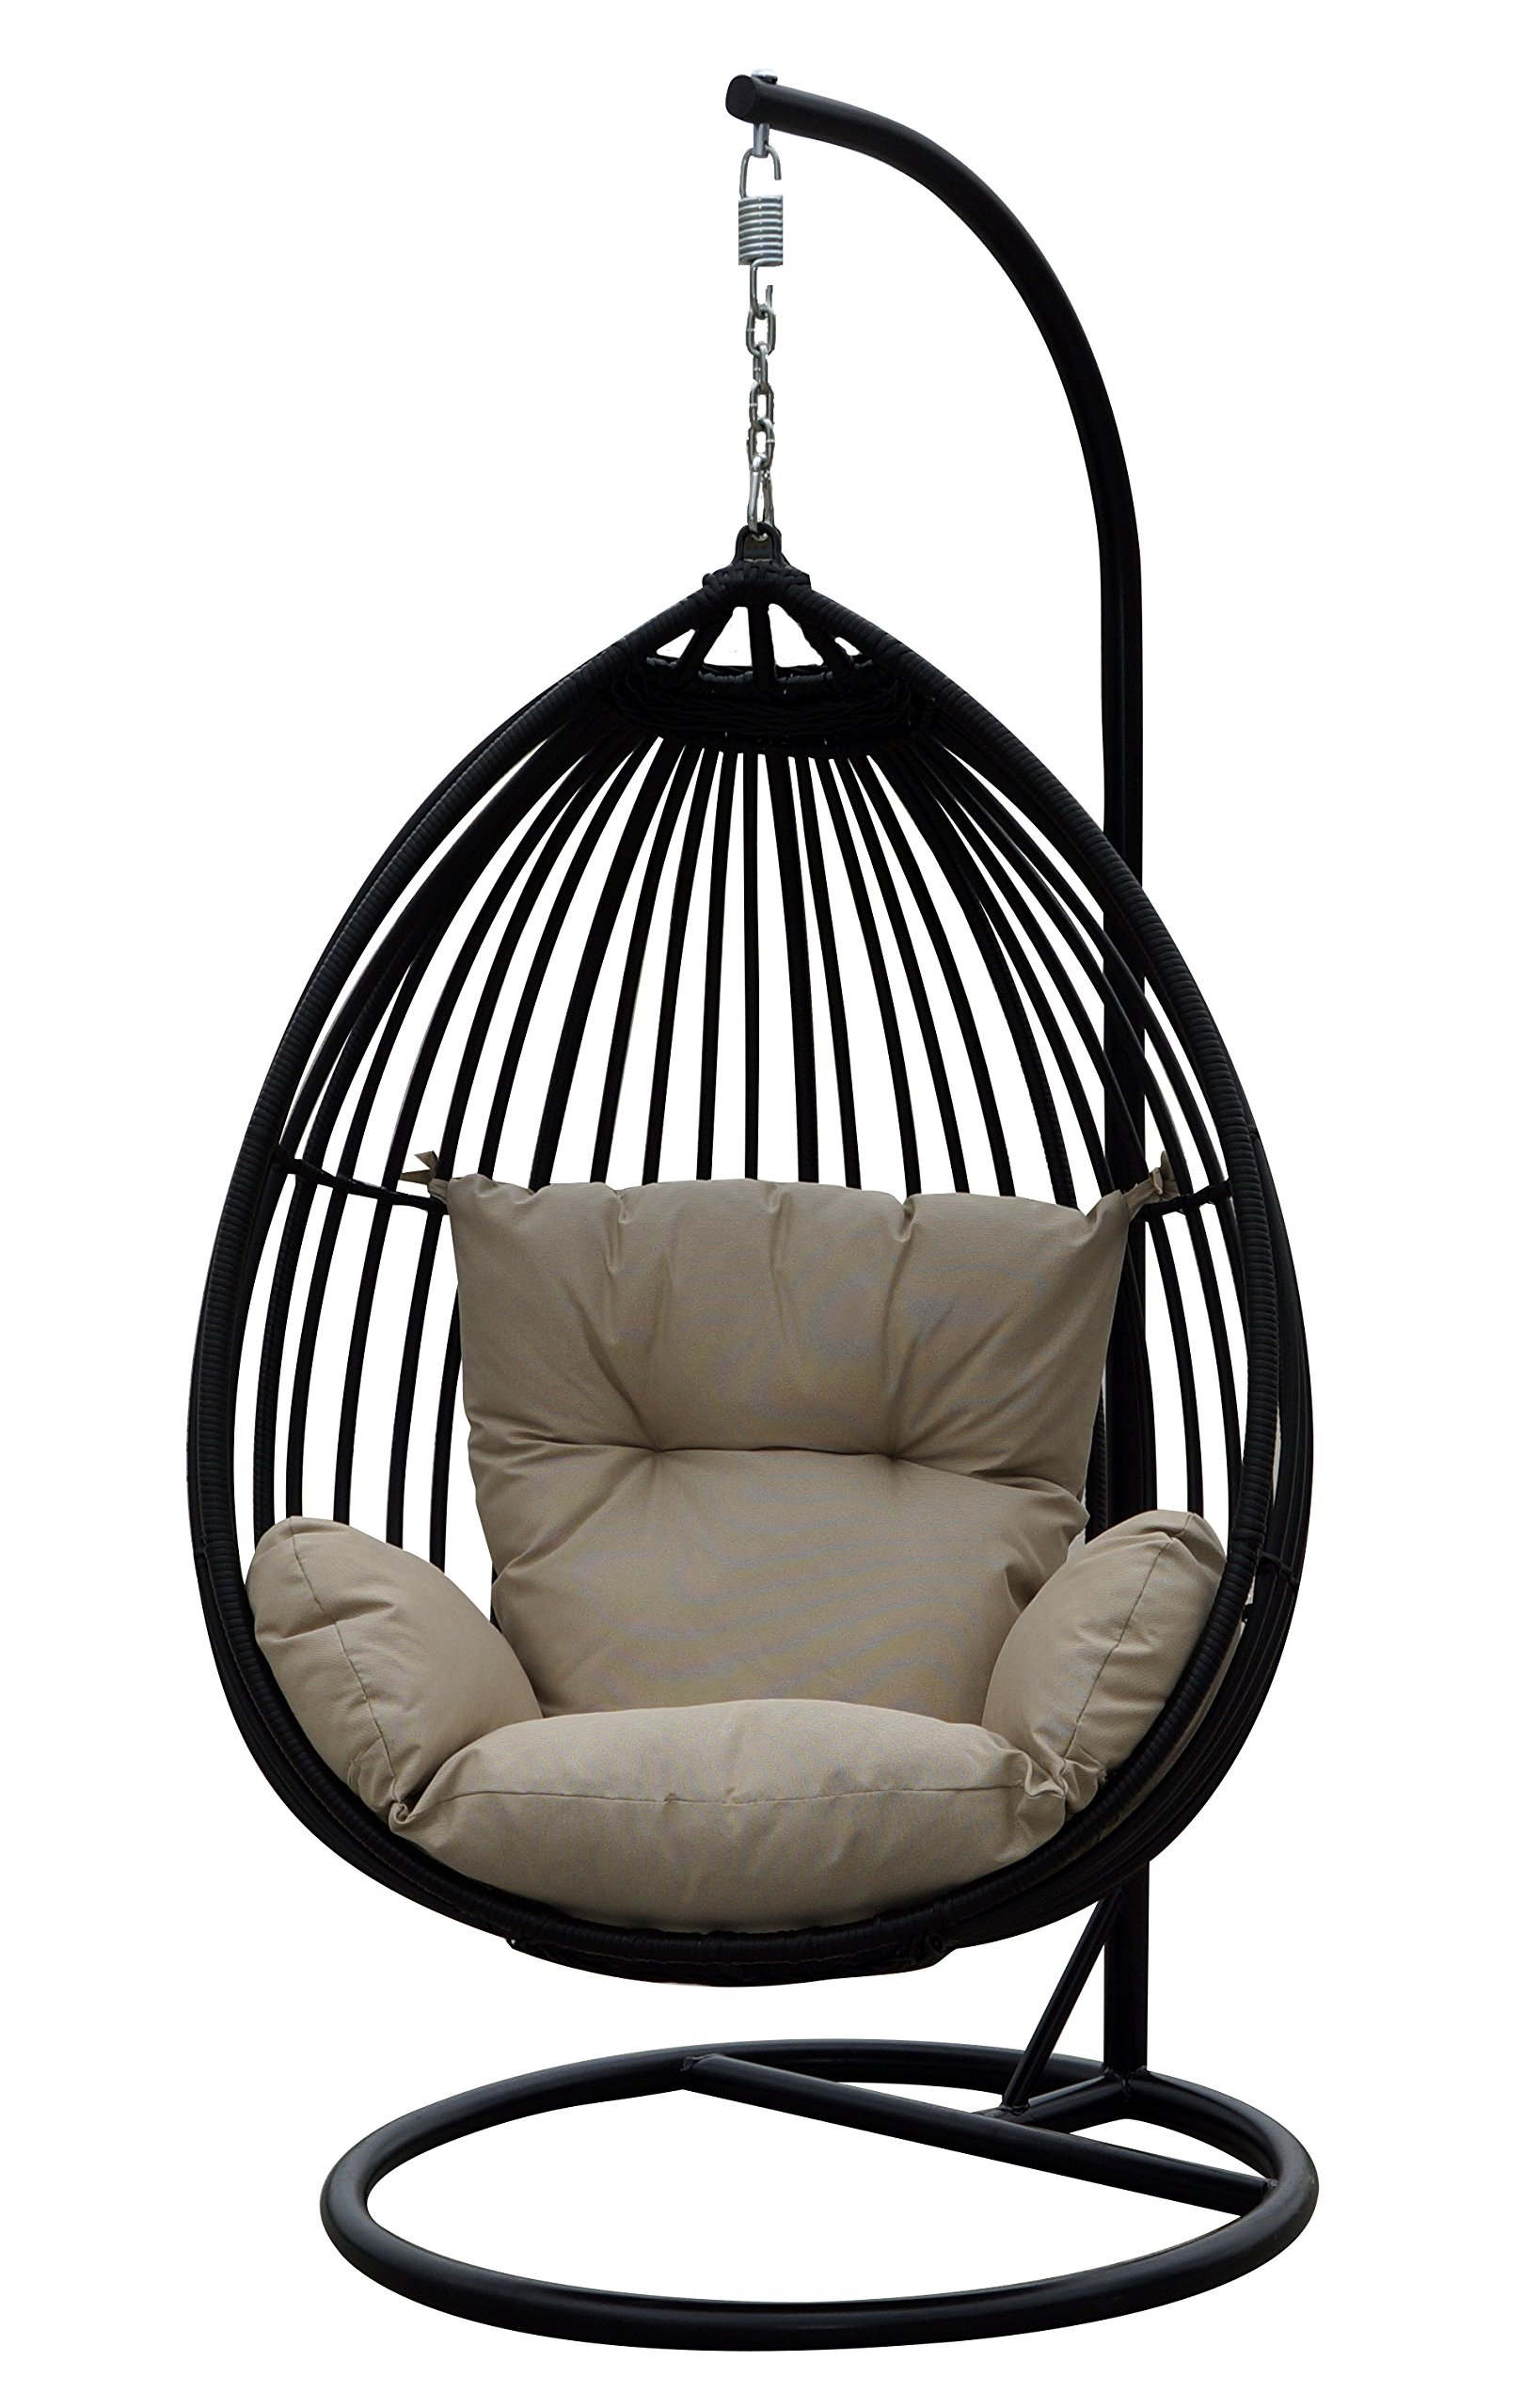 Darlee Tear Drop Shaped Swing Chair with Cushion by Darlee